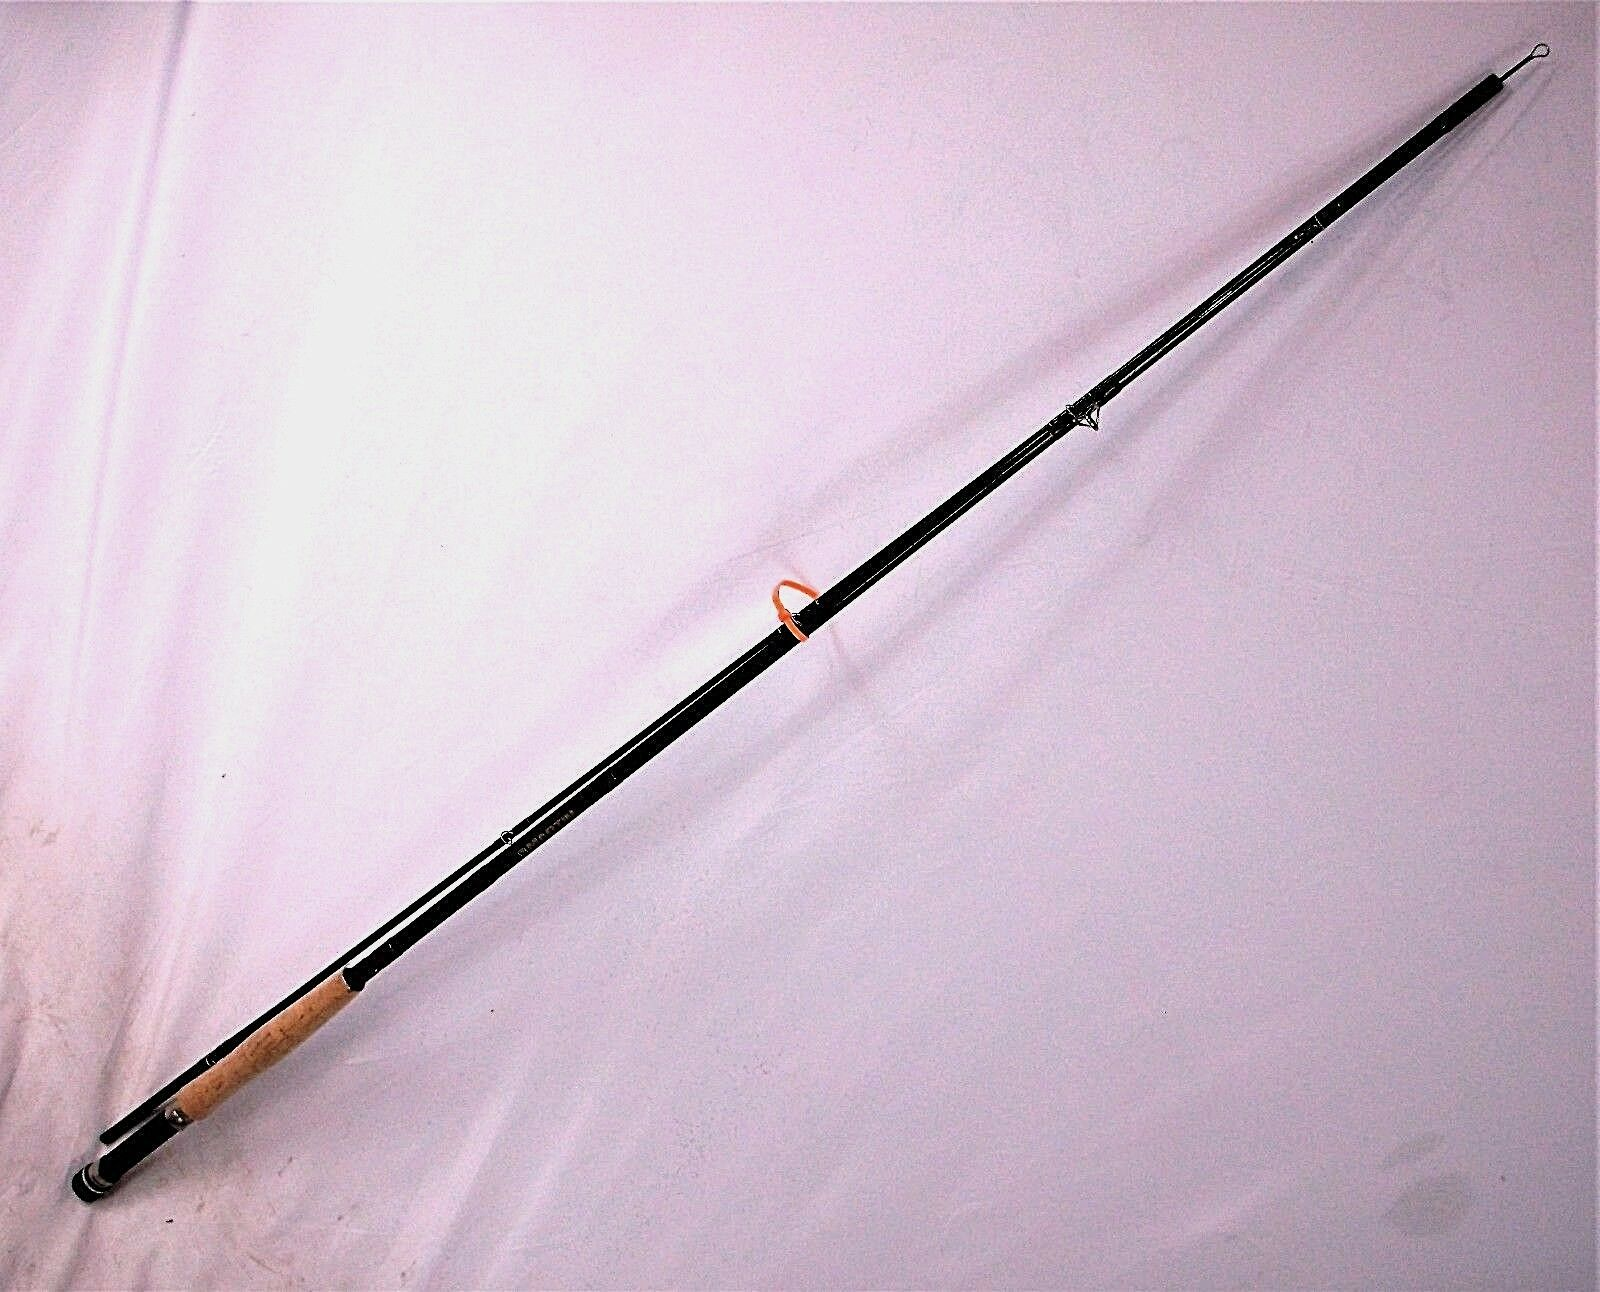 FLY FISHING POLE BY MARTIN 7 1 2' fly rod